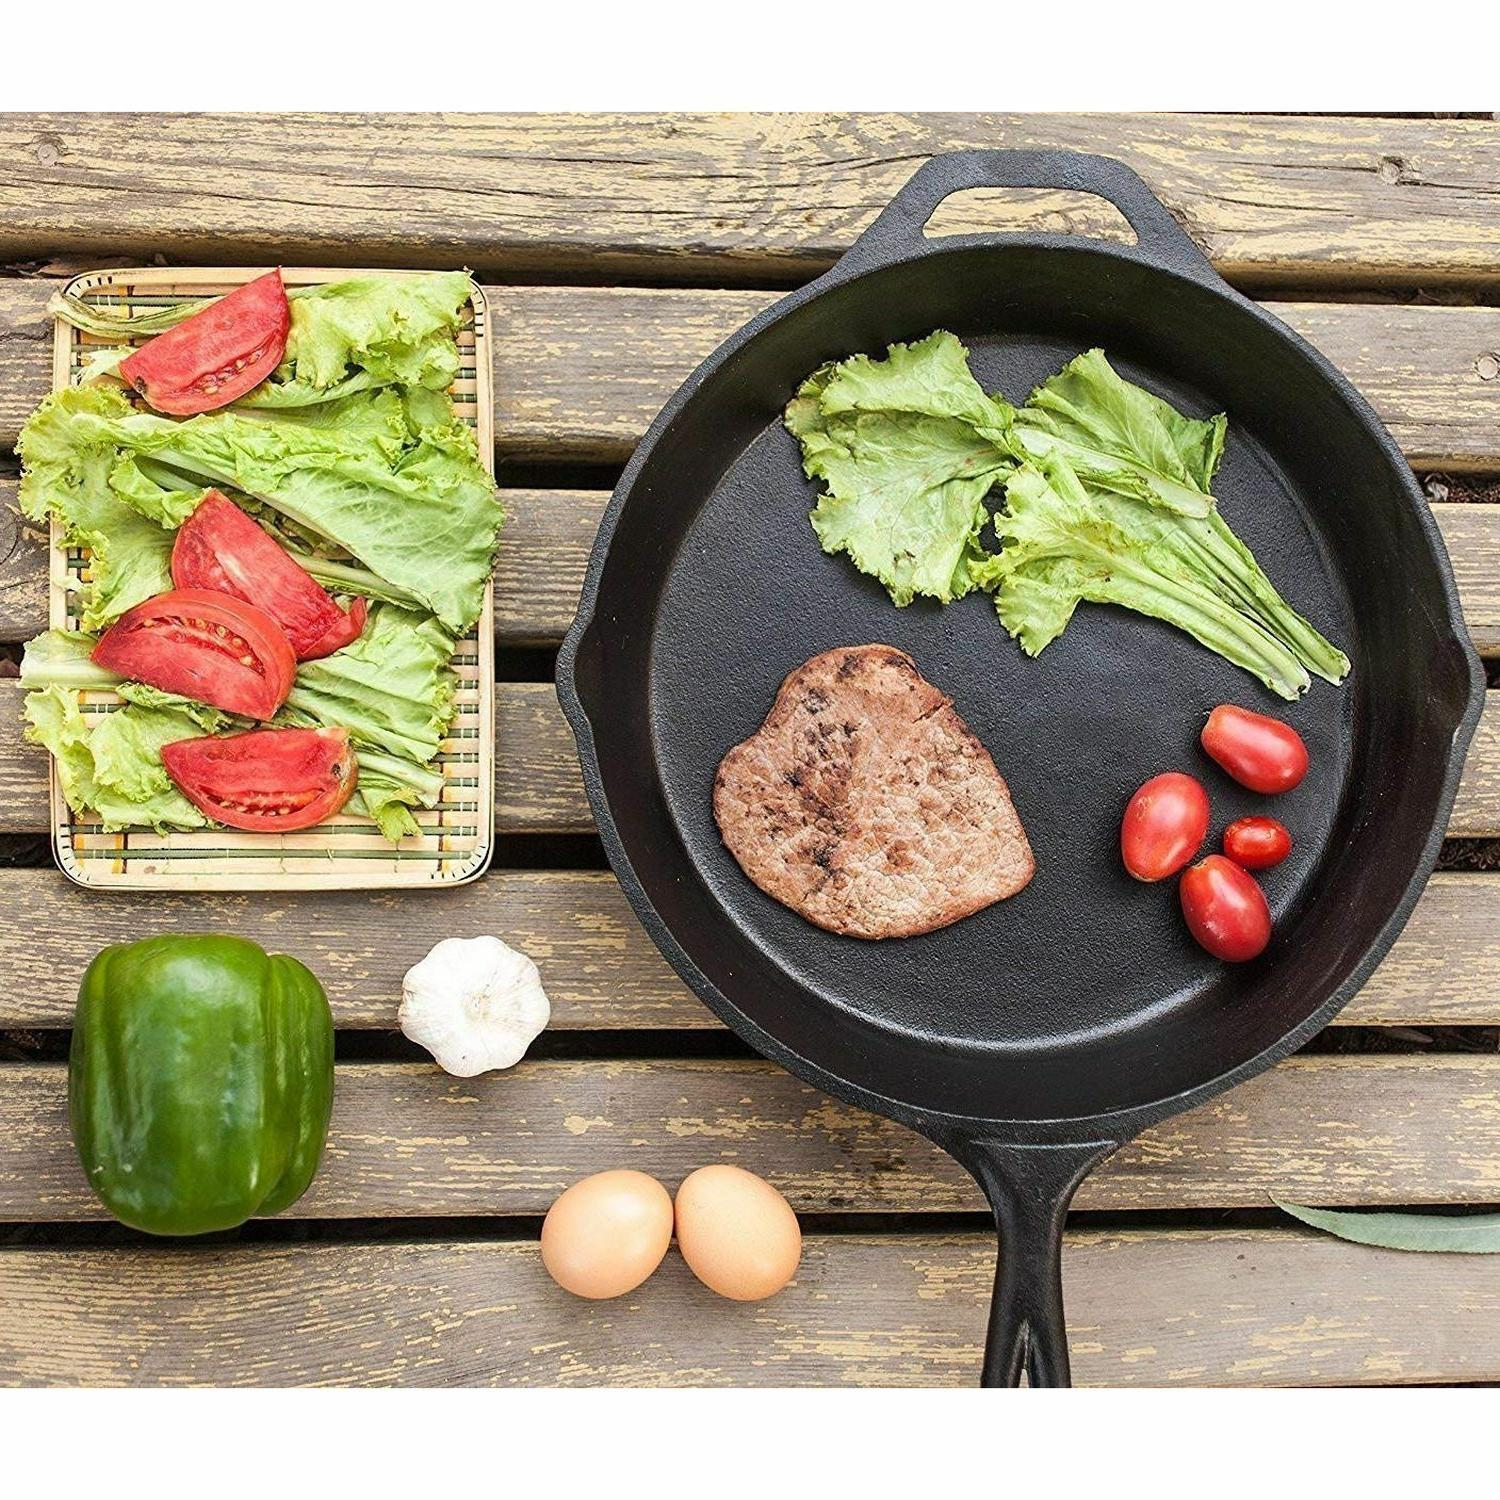 3 IRON SKILLET Pre 6 8 10 Inch Stove Fry Pans Cookware